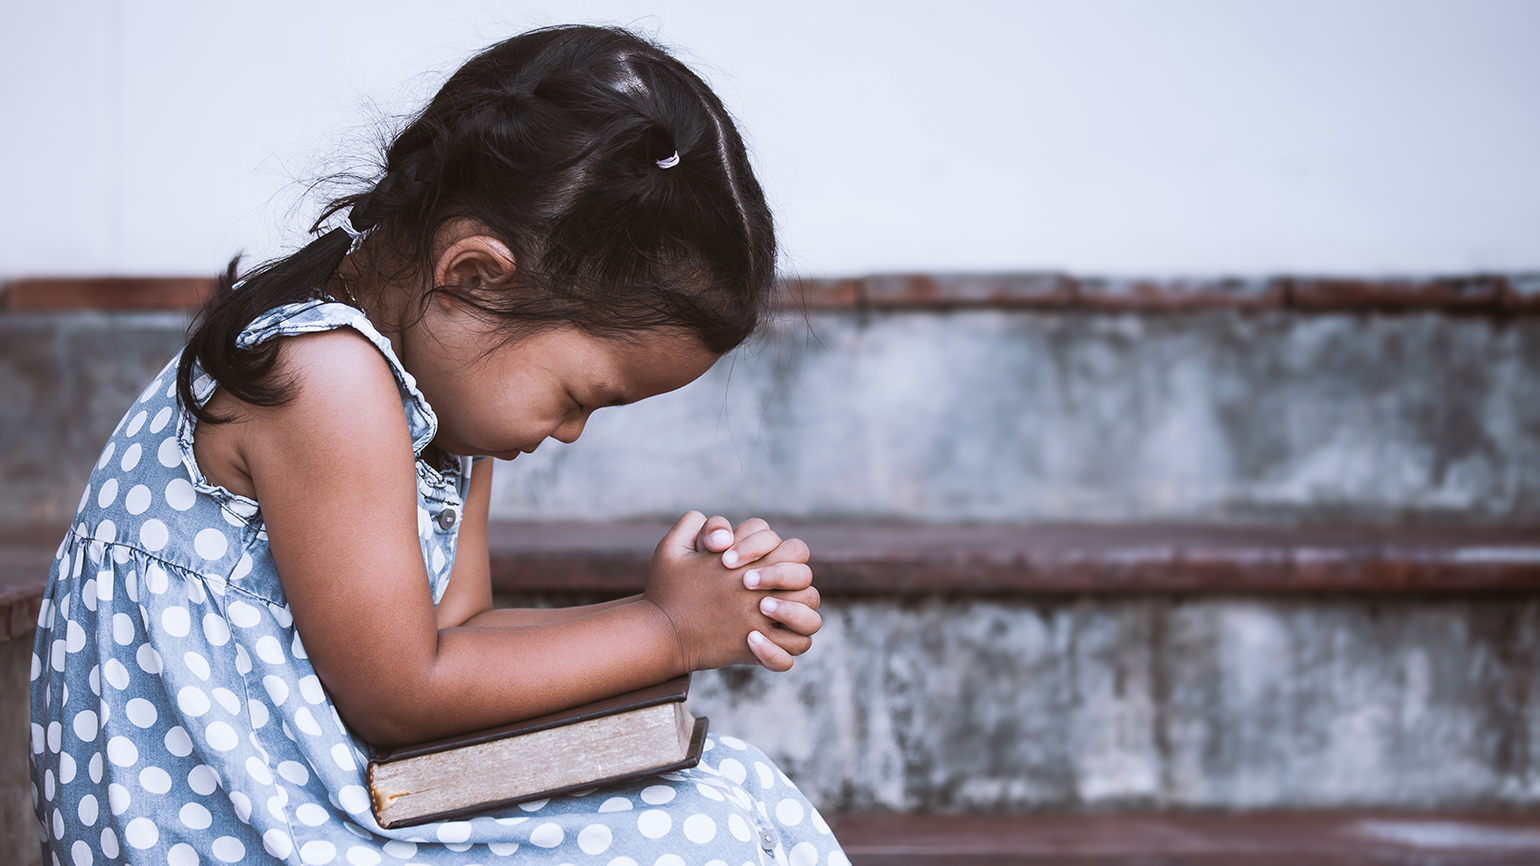 A young girl clasps her hands in prayer